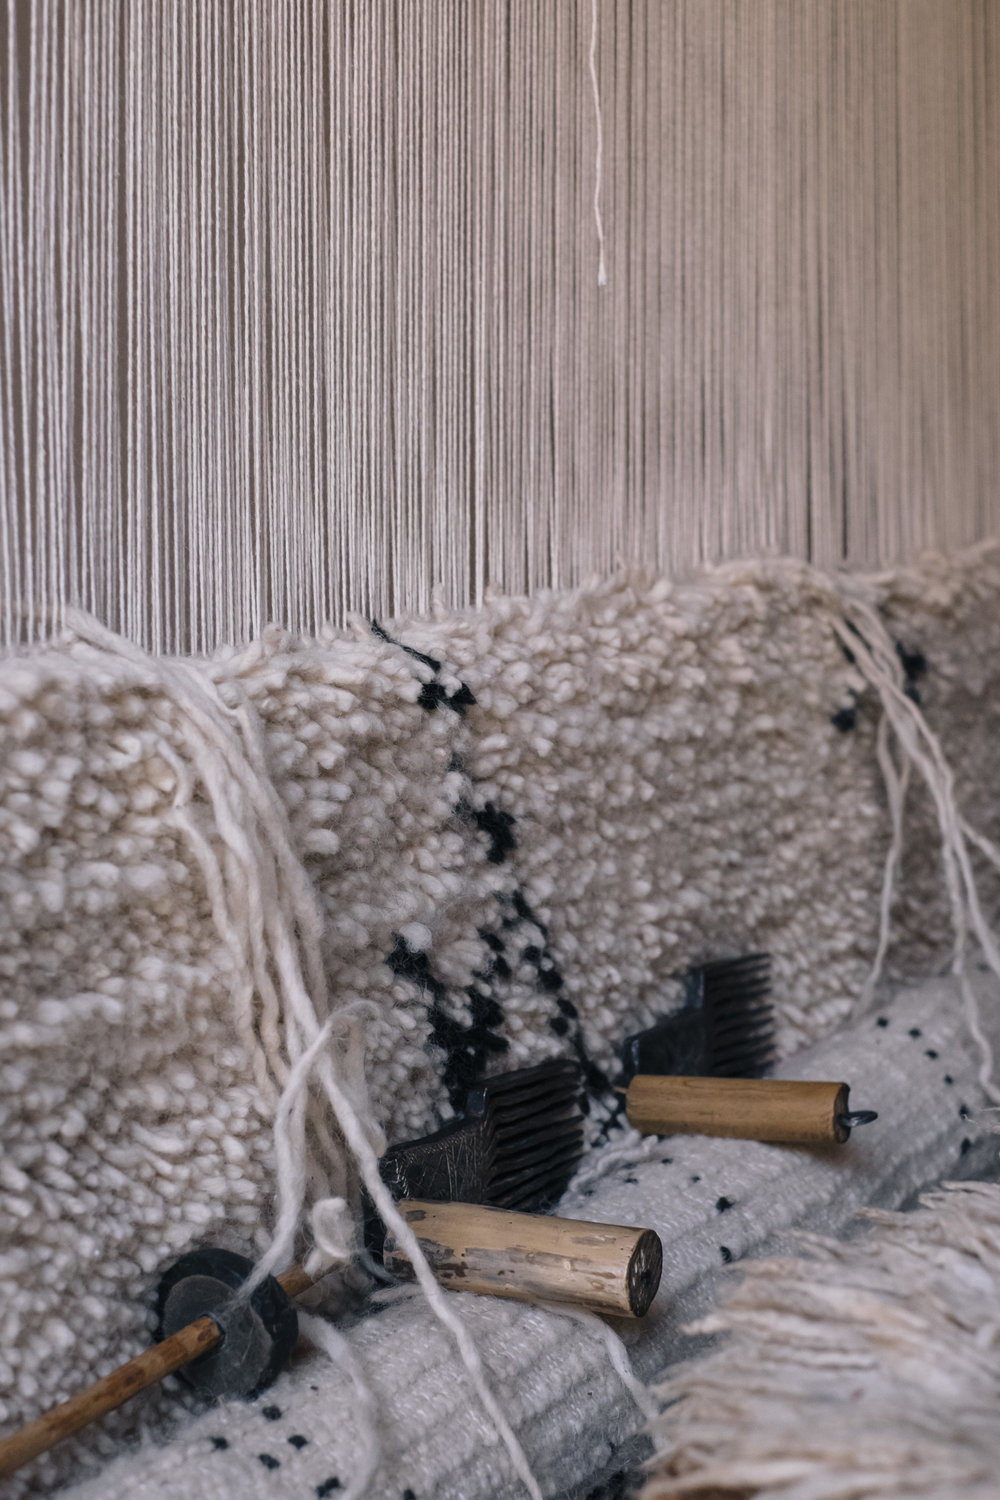 The weaving of traditional Moroccan rugs, with contemporary patterns designed by the artisans, guided by Sabrina Kraus López.